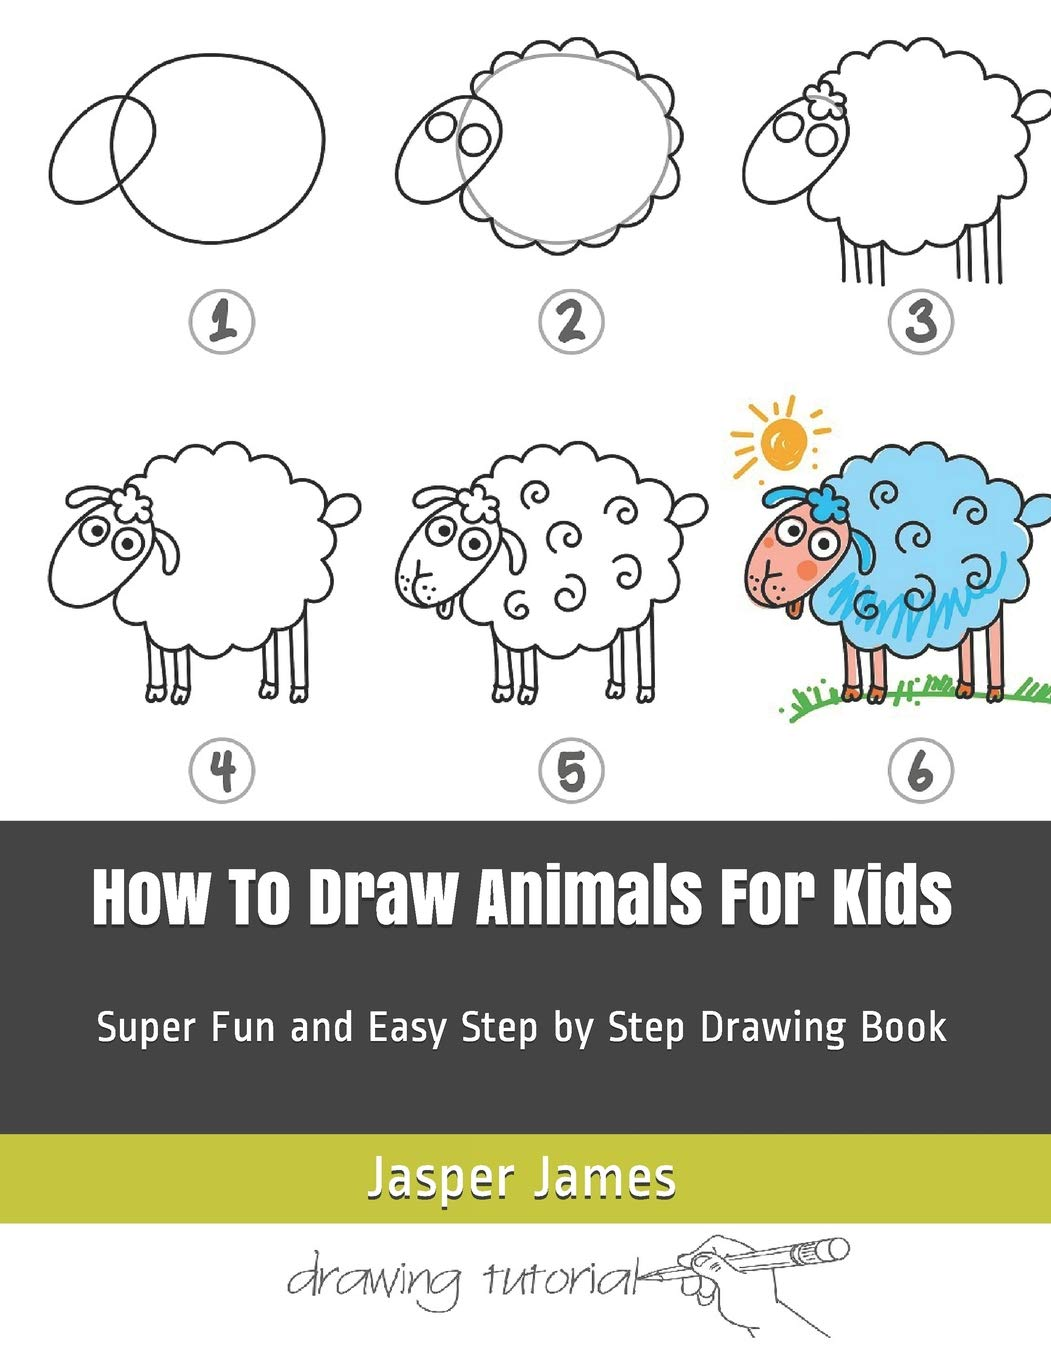 How To Draw Animals For Kids Super Fun and Easy Step by Step ...